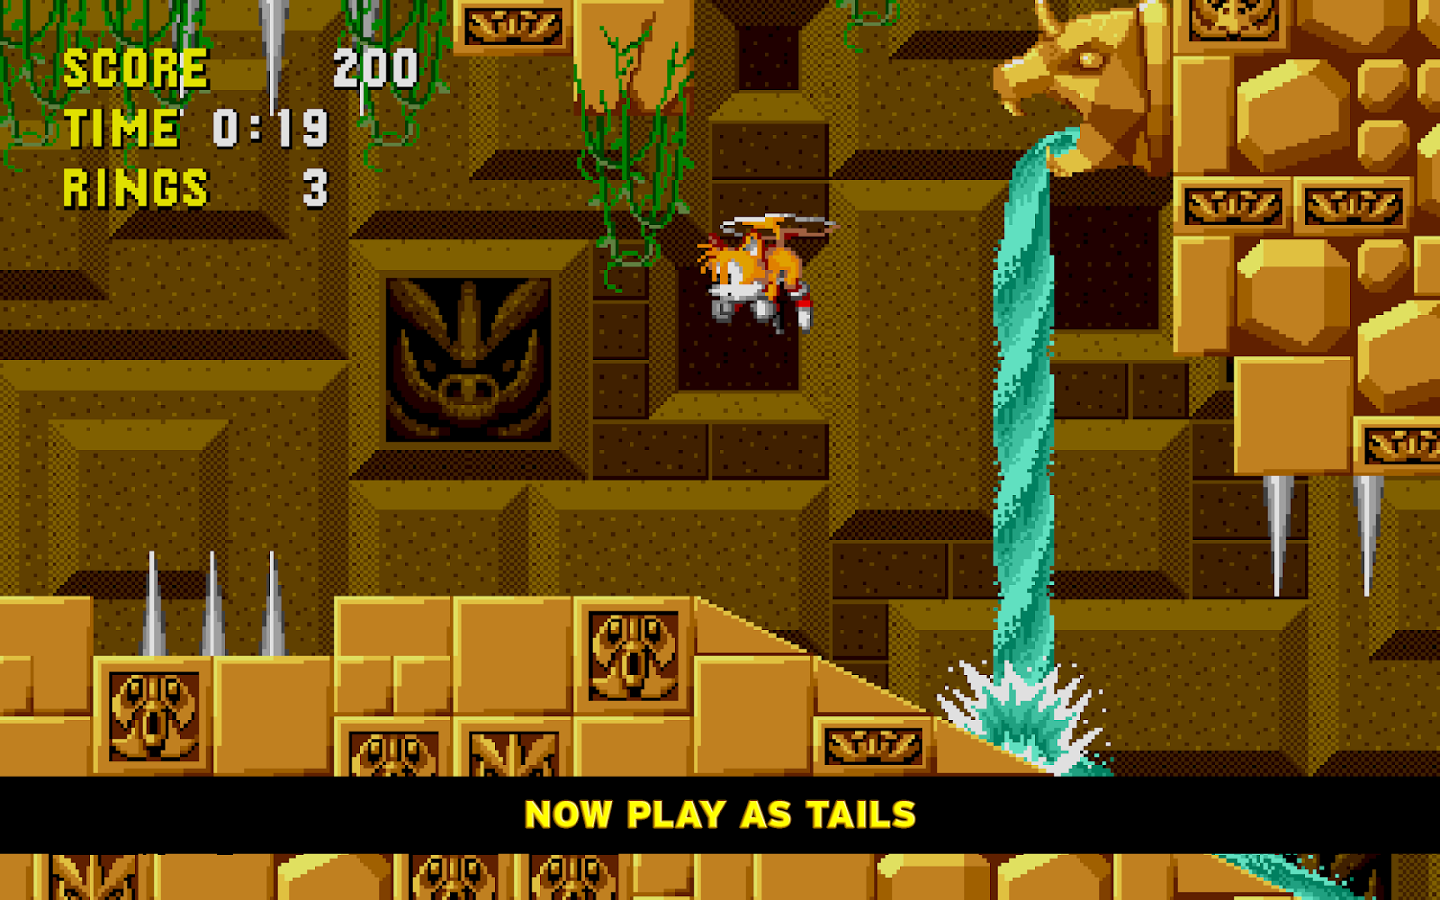 Sonic The Hedgehog Screenshot 13